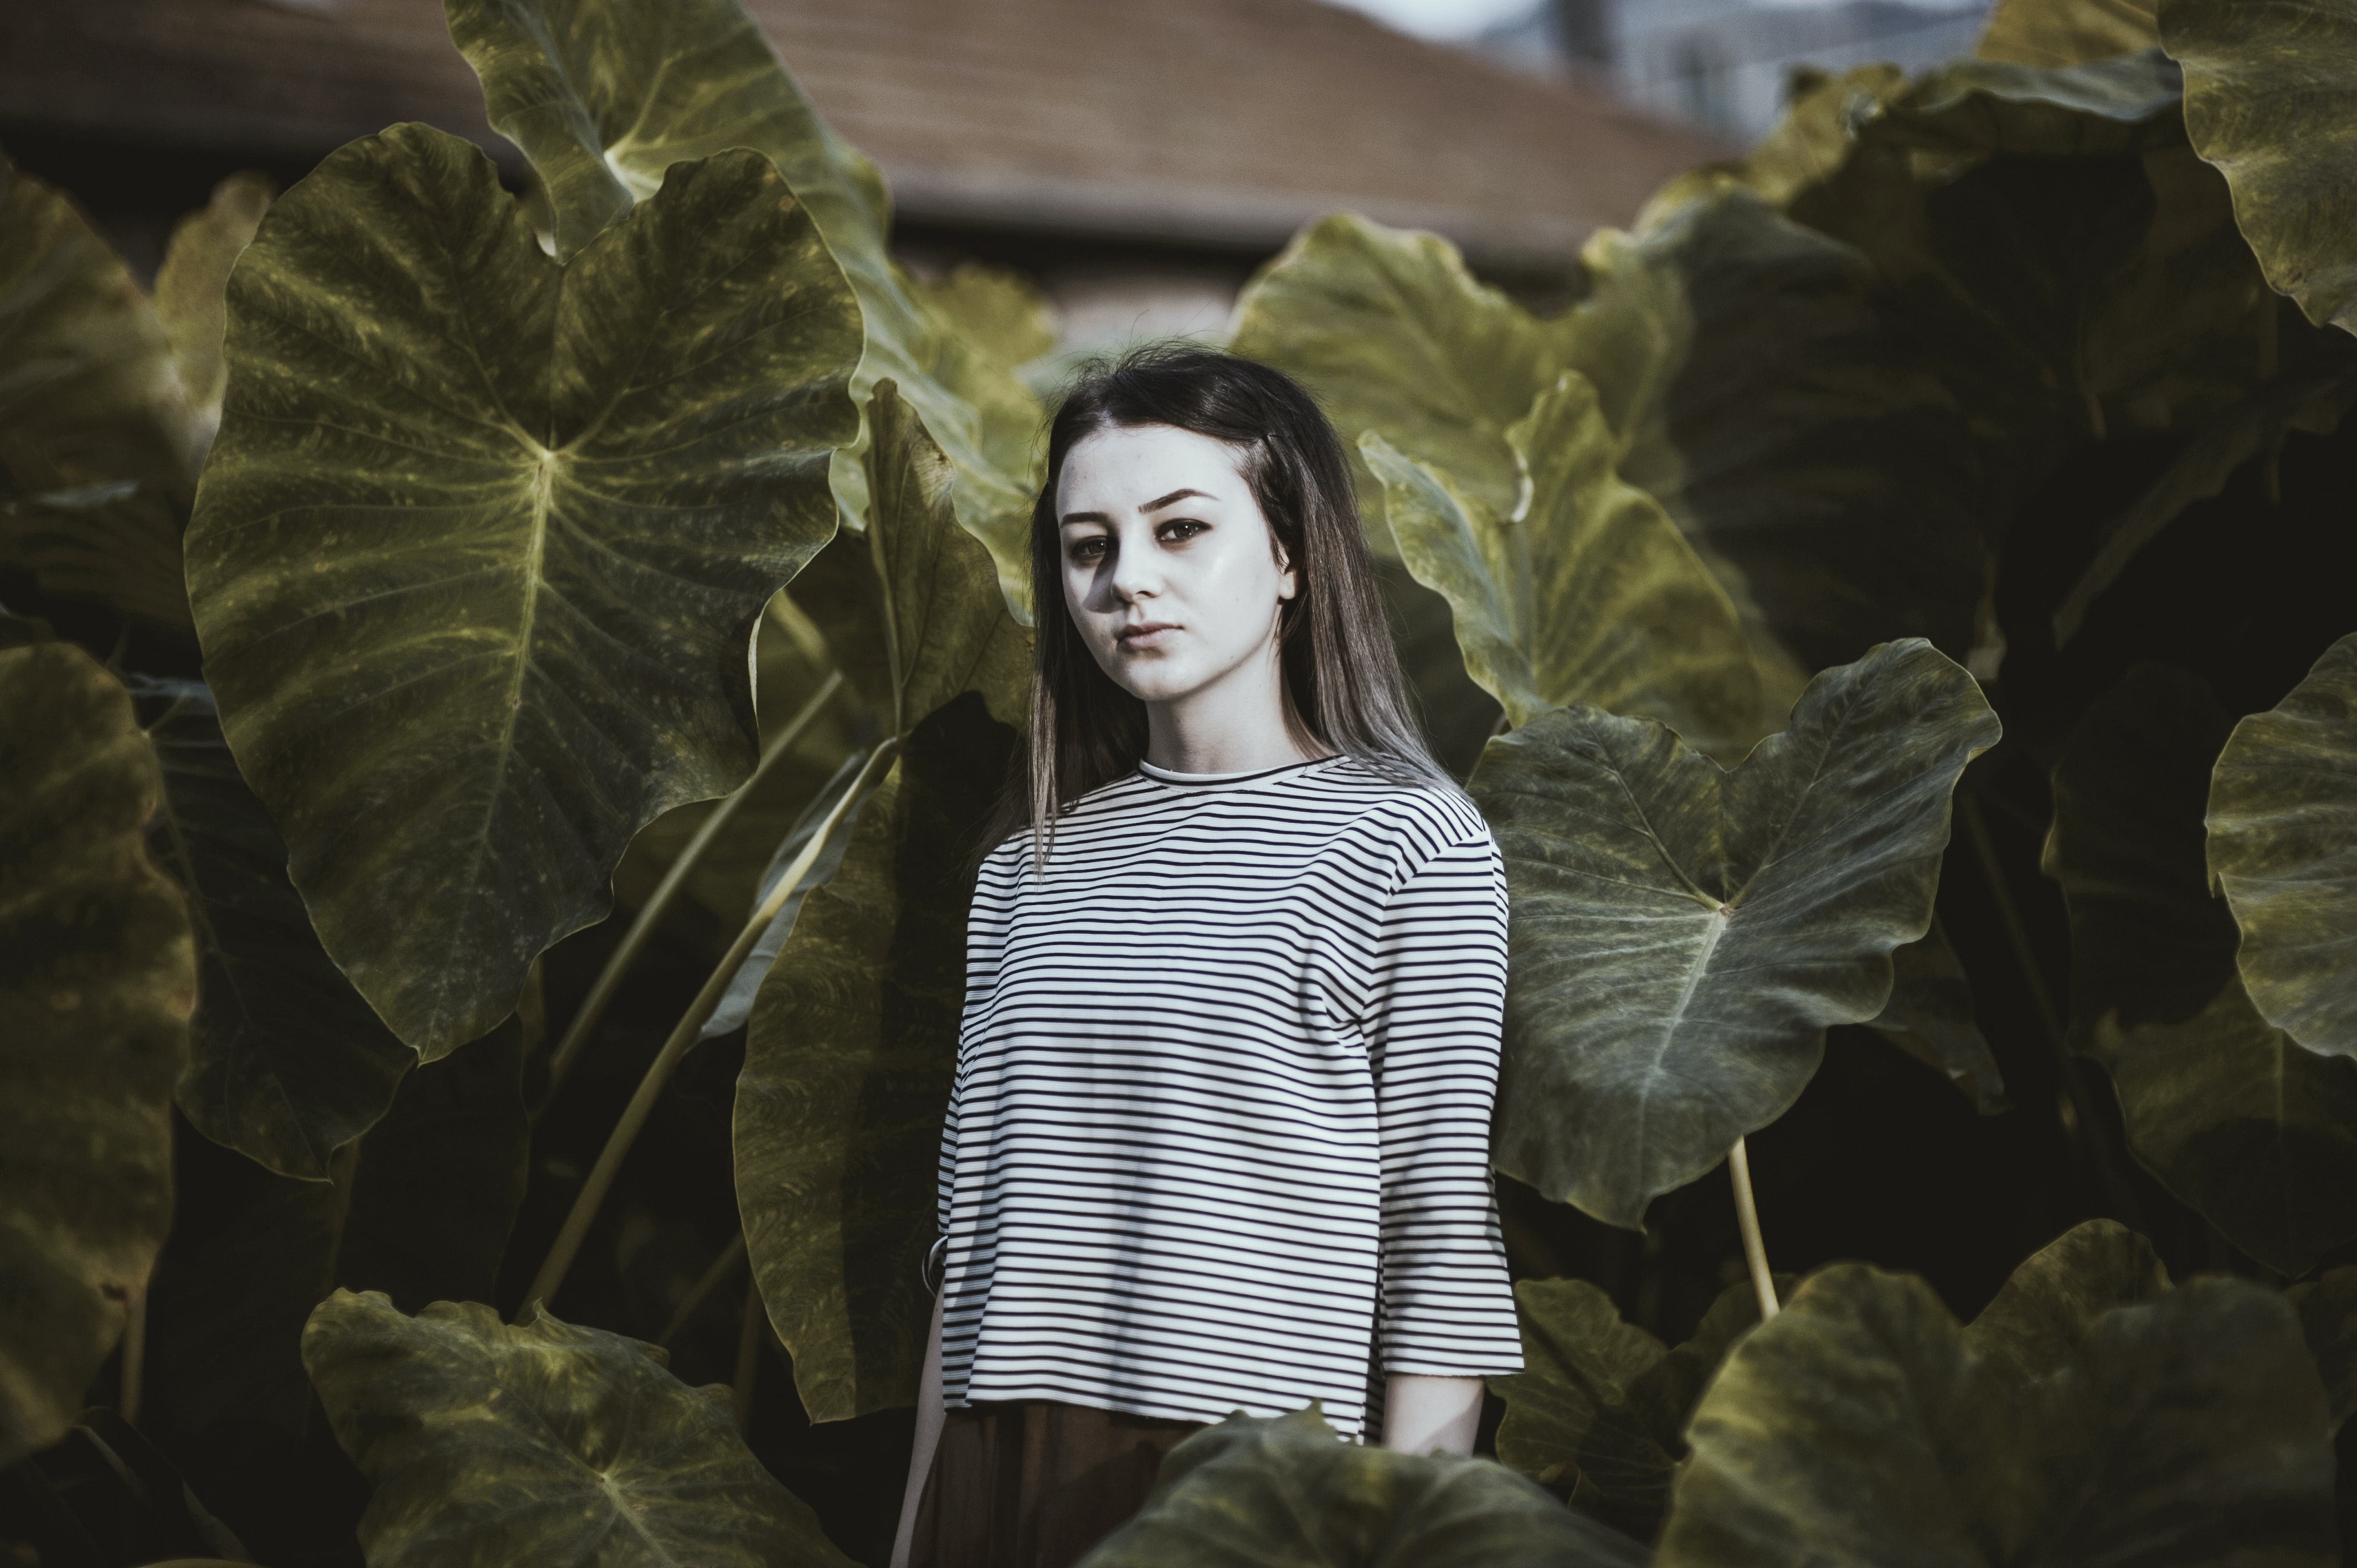 A woman in a striped shirt makes a serious expression in front of large green leaves